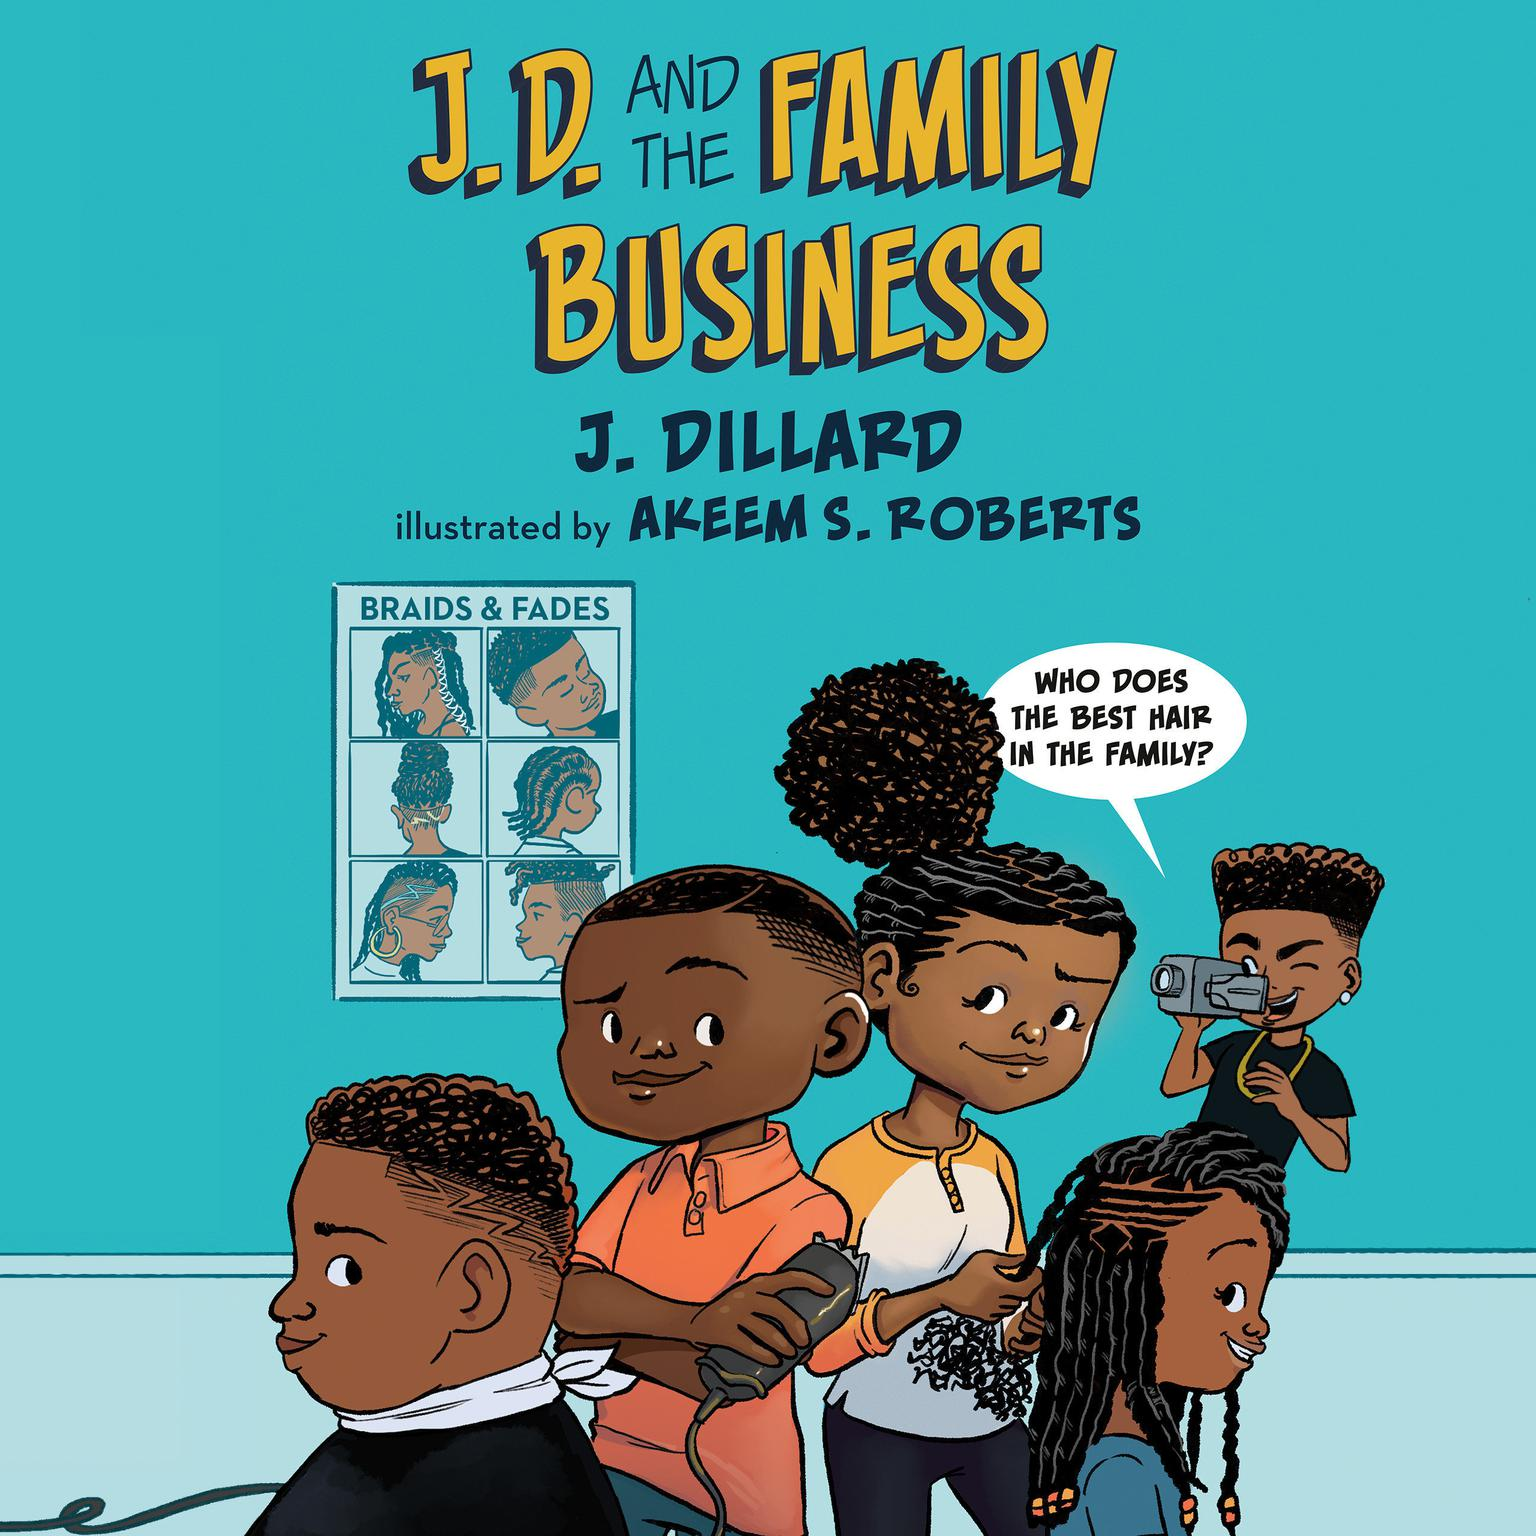 J.D. and the Family Business Audiobook, by J. Dillard